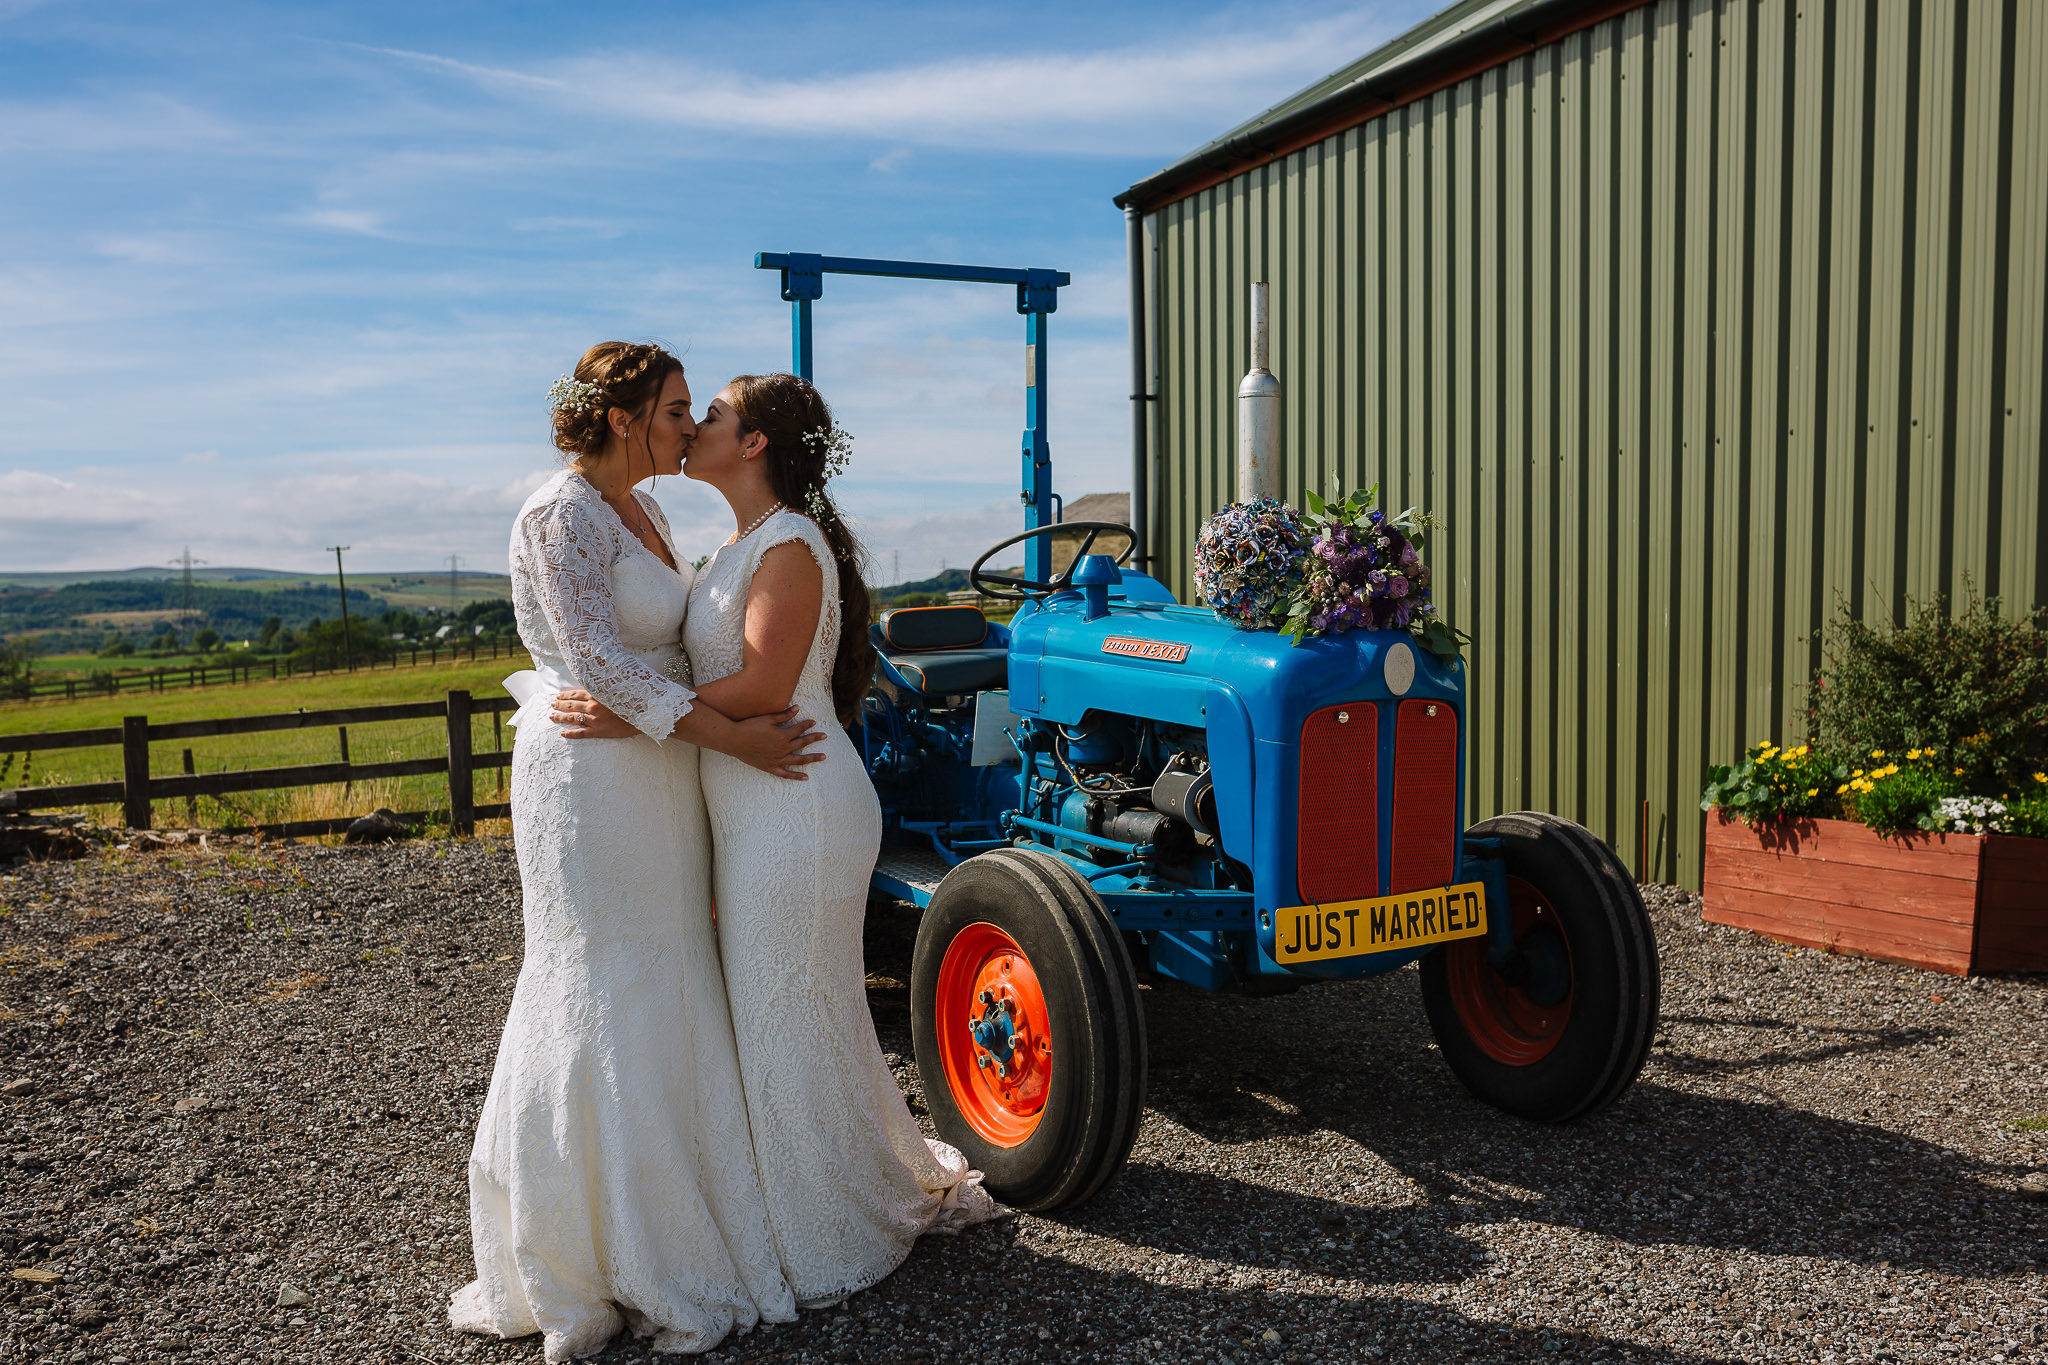 same sex couple kiss in front of the tractor at the wellbeing farm